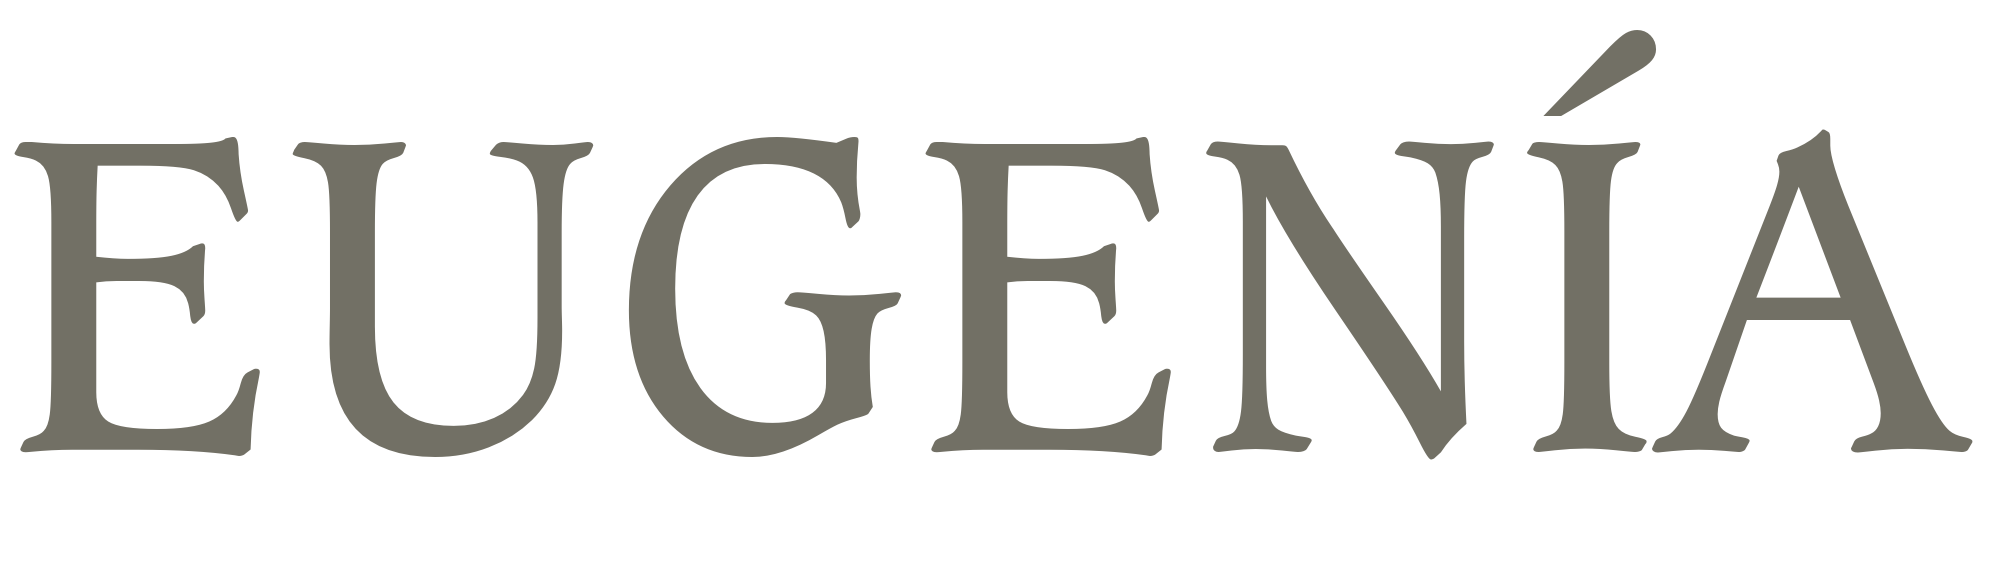 Eugenía - Name's Meaning of Eugenía (Eugenia)